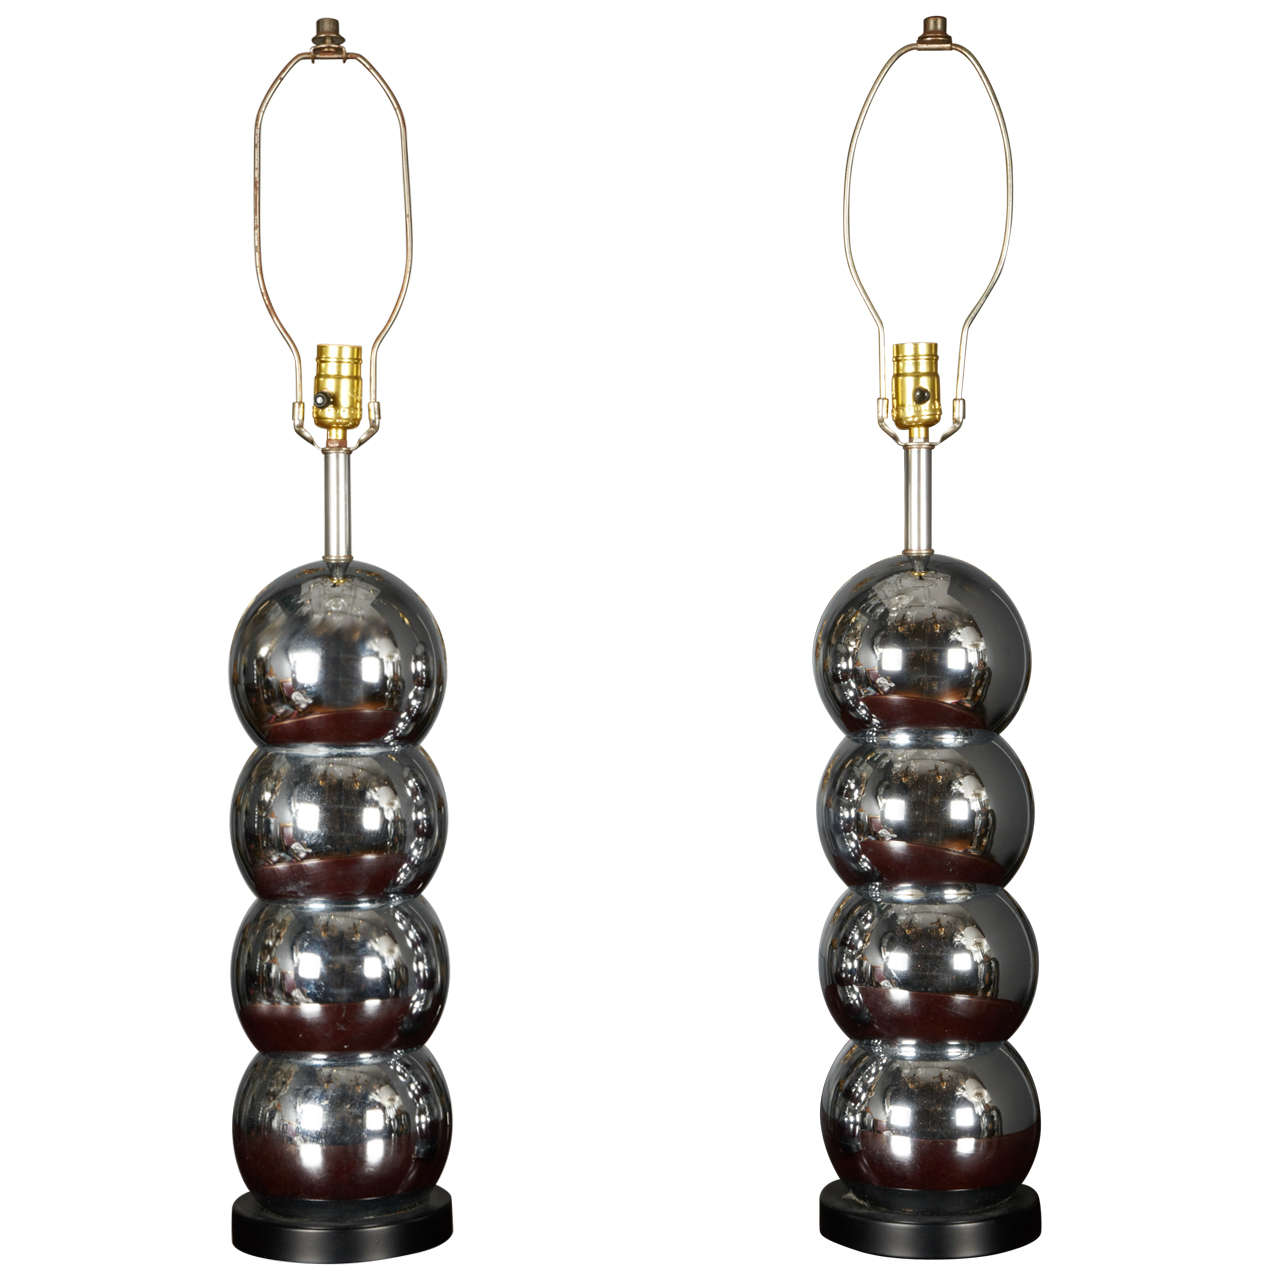 Pair of Stainless Steel Lamps